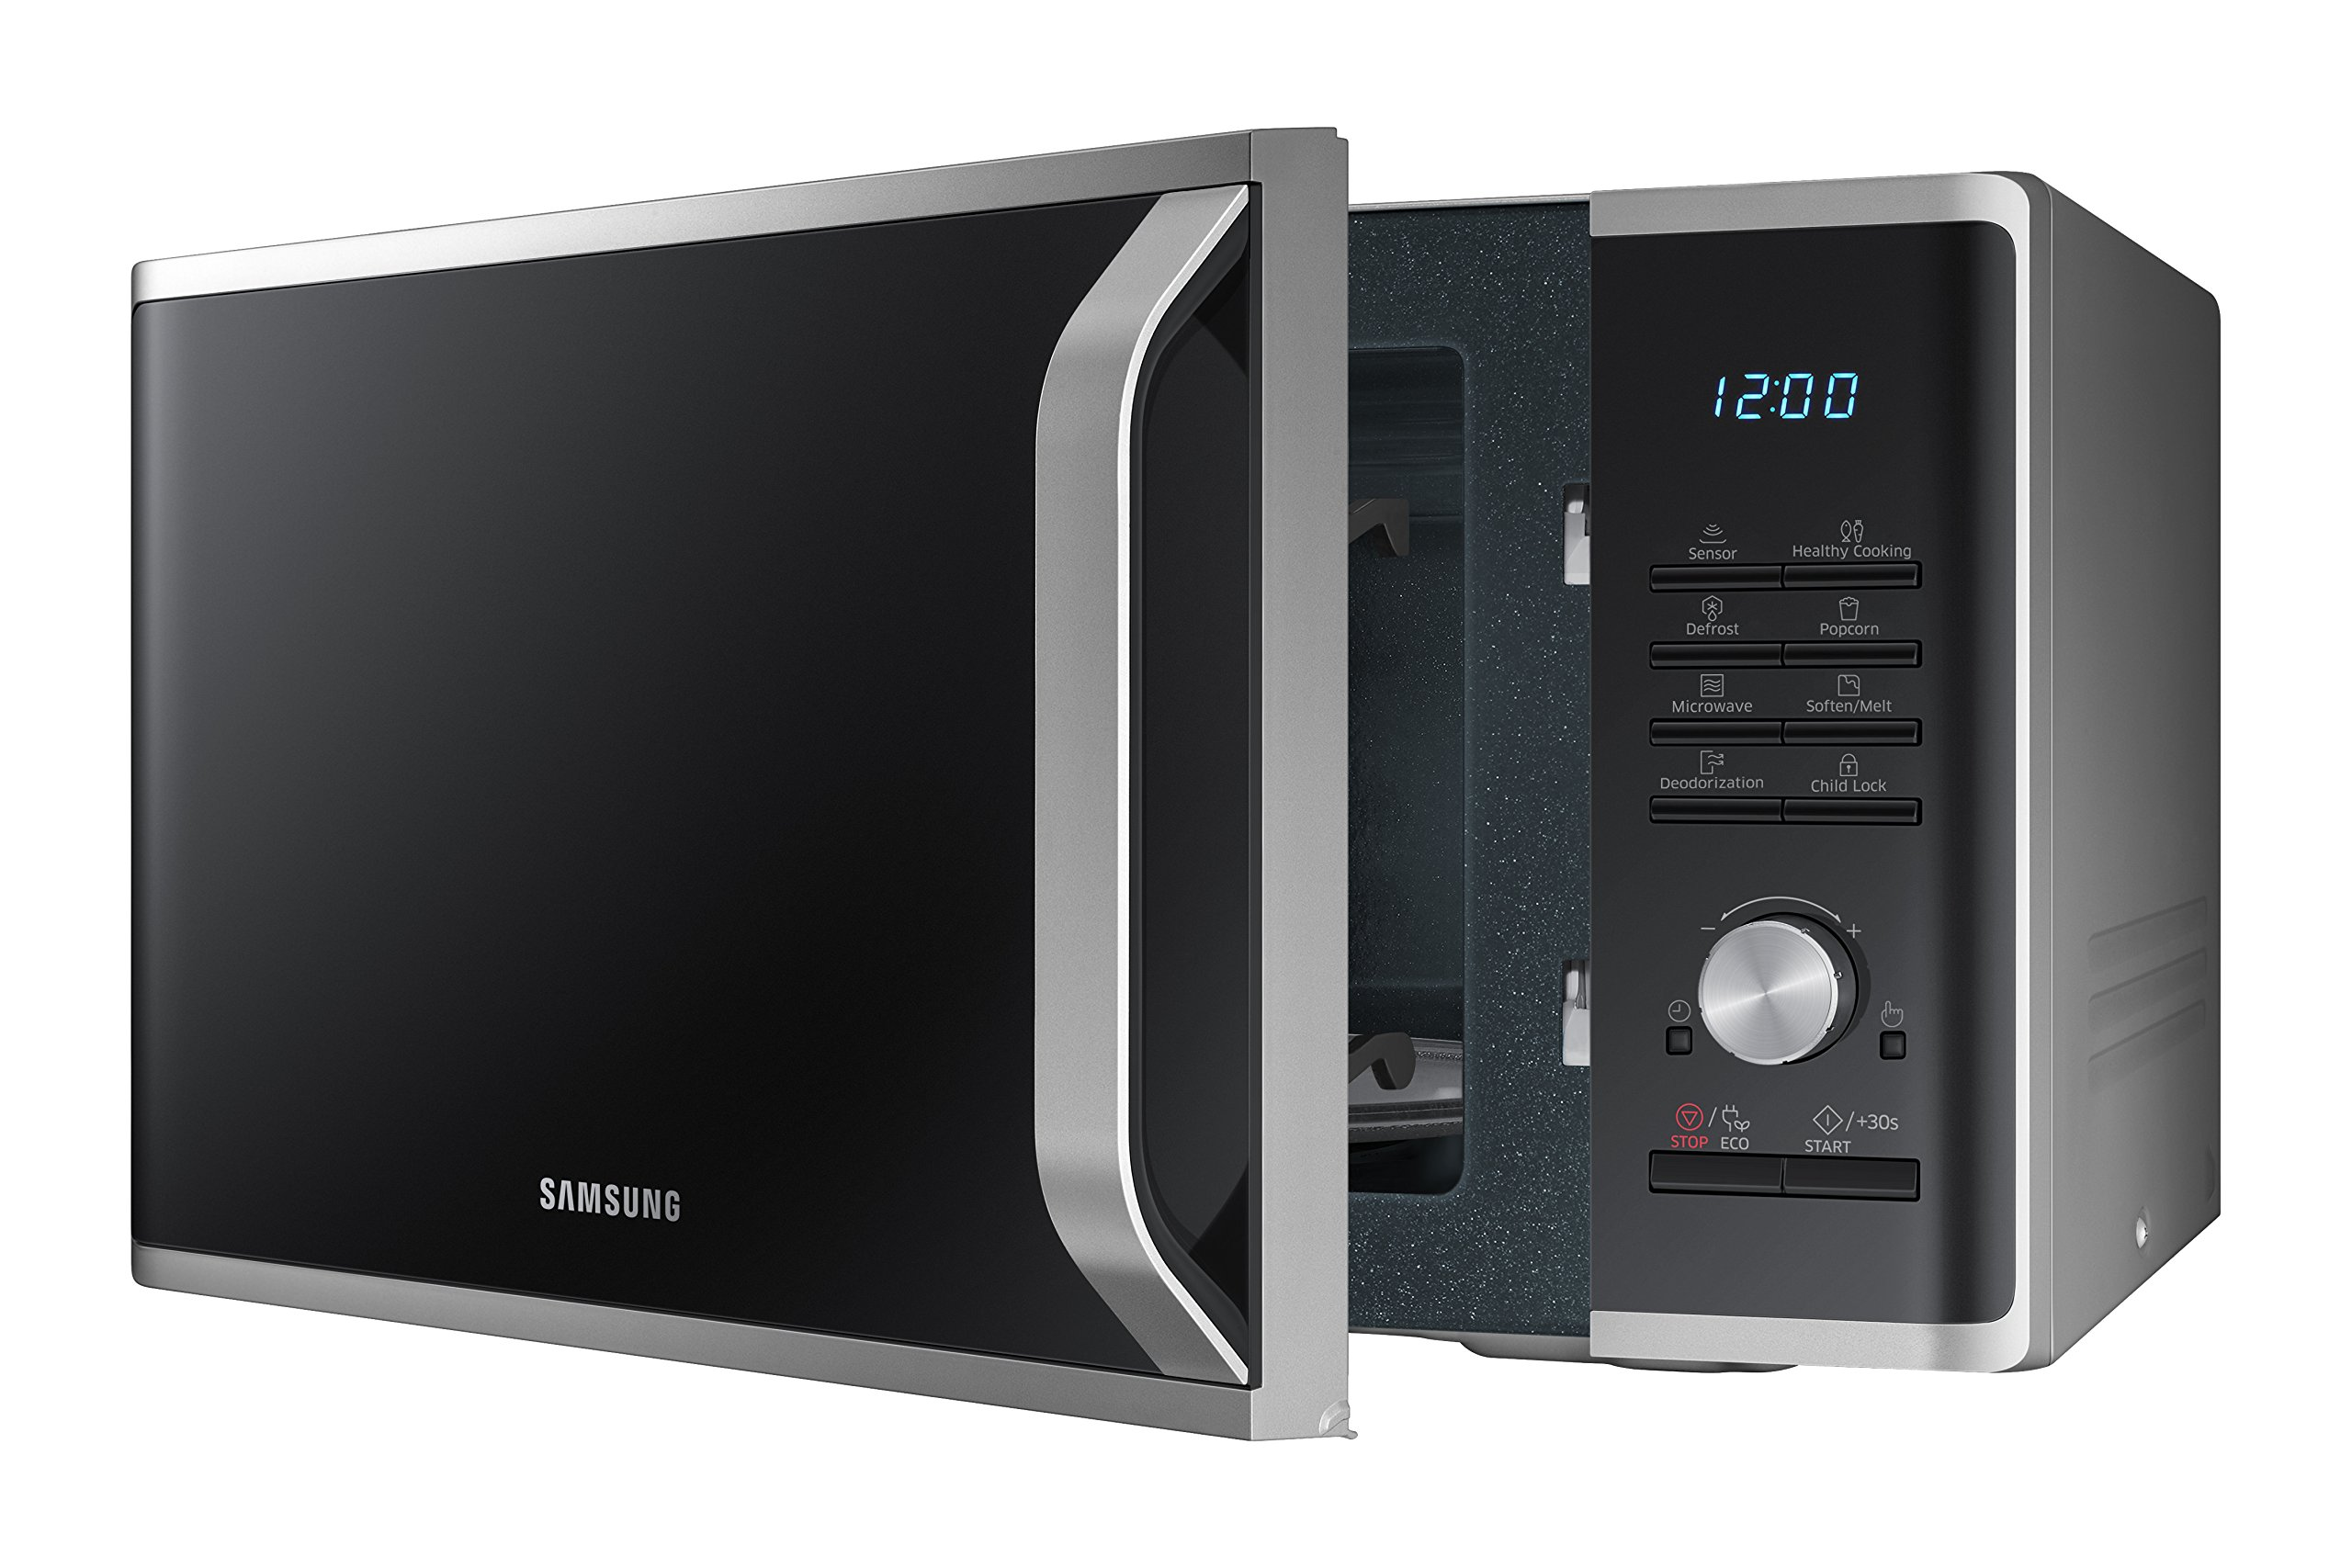 Samsung MS11K3000AS 1.1 cu. ft. Countertop Microwave Oven with Sensor and Ceramic Enamel Interior, Silver Sand by Samsung (Image #4)